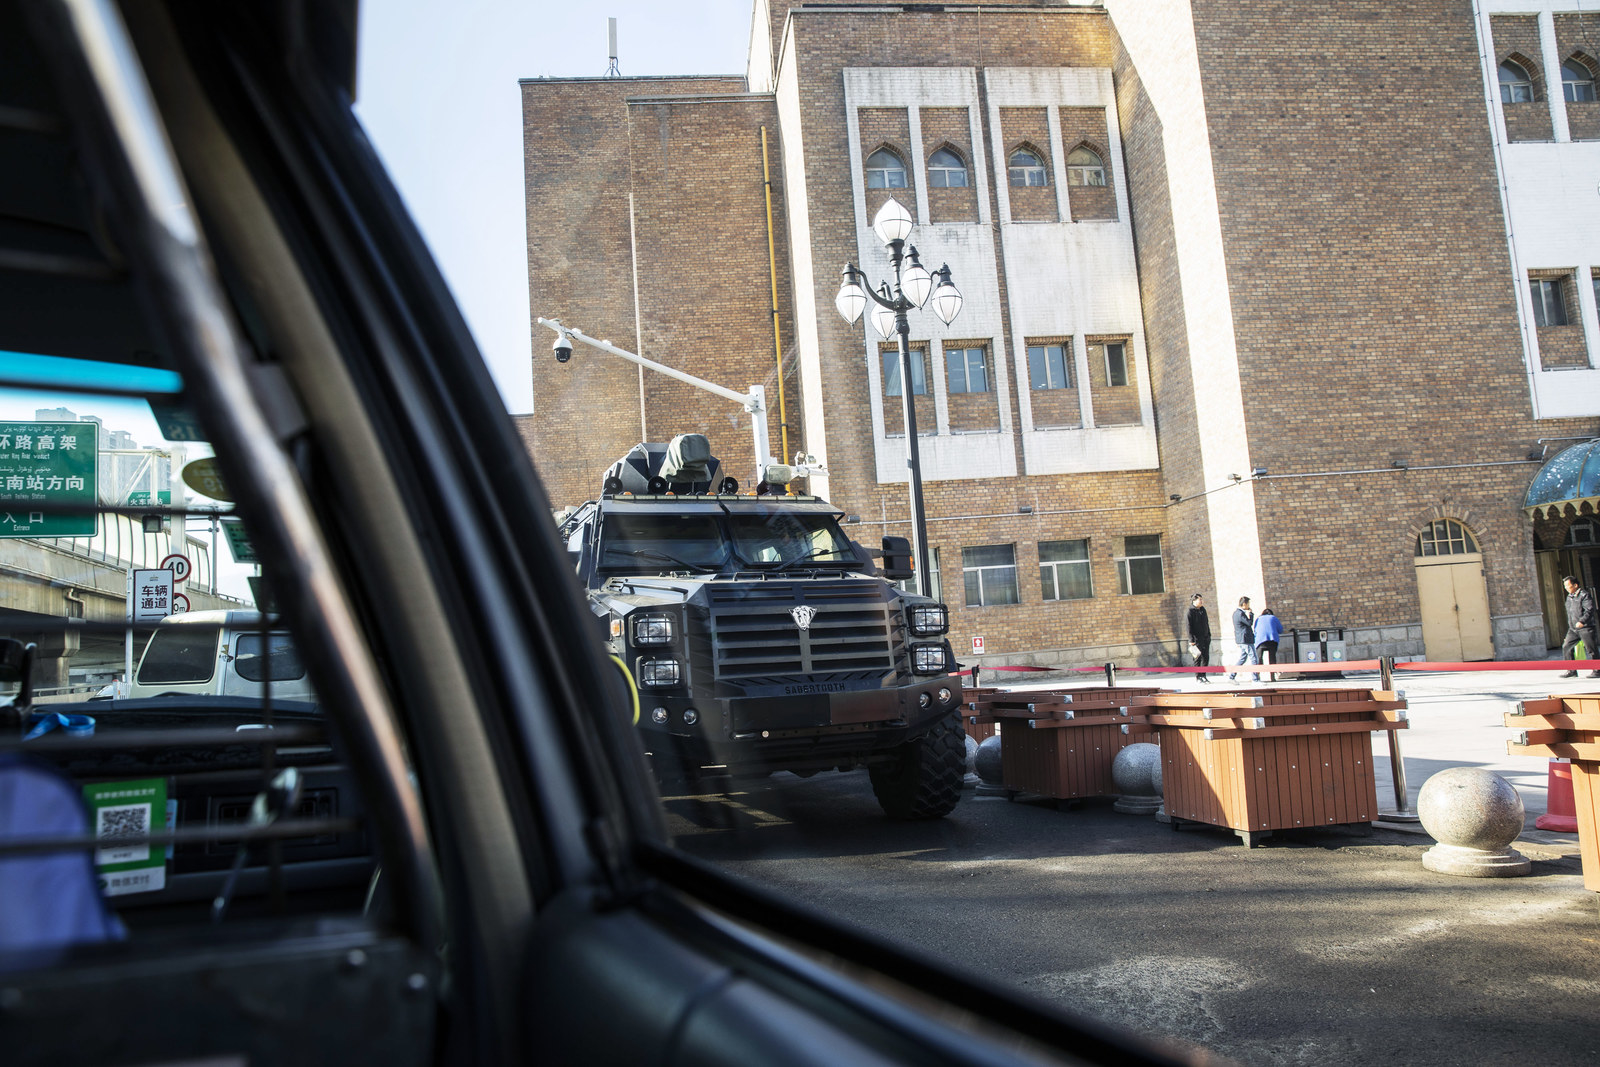 An armored police vehicle is seen from inside a taxi in Ürümqi, Xinjiang autonomous region, China, on Nov. 6, 2018.